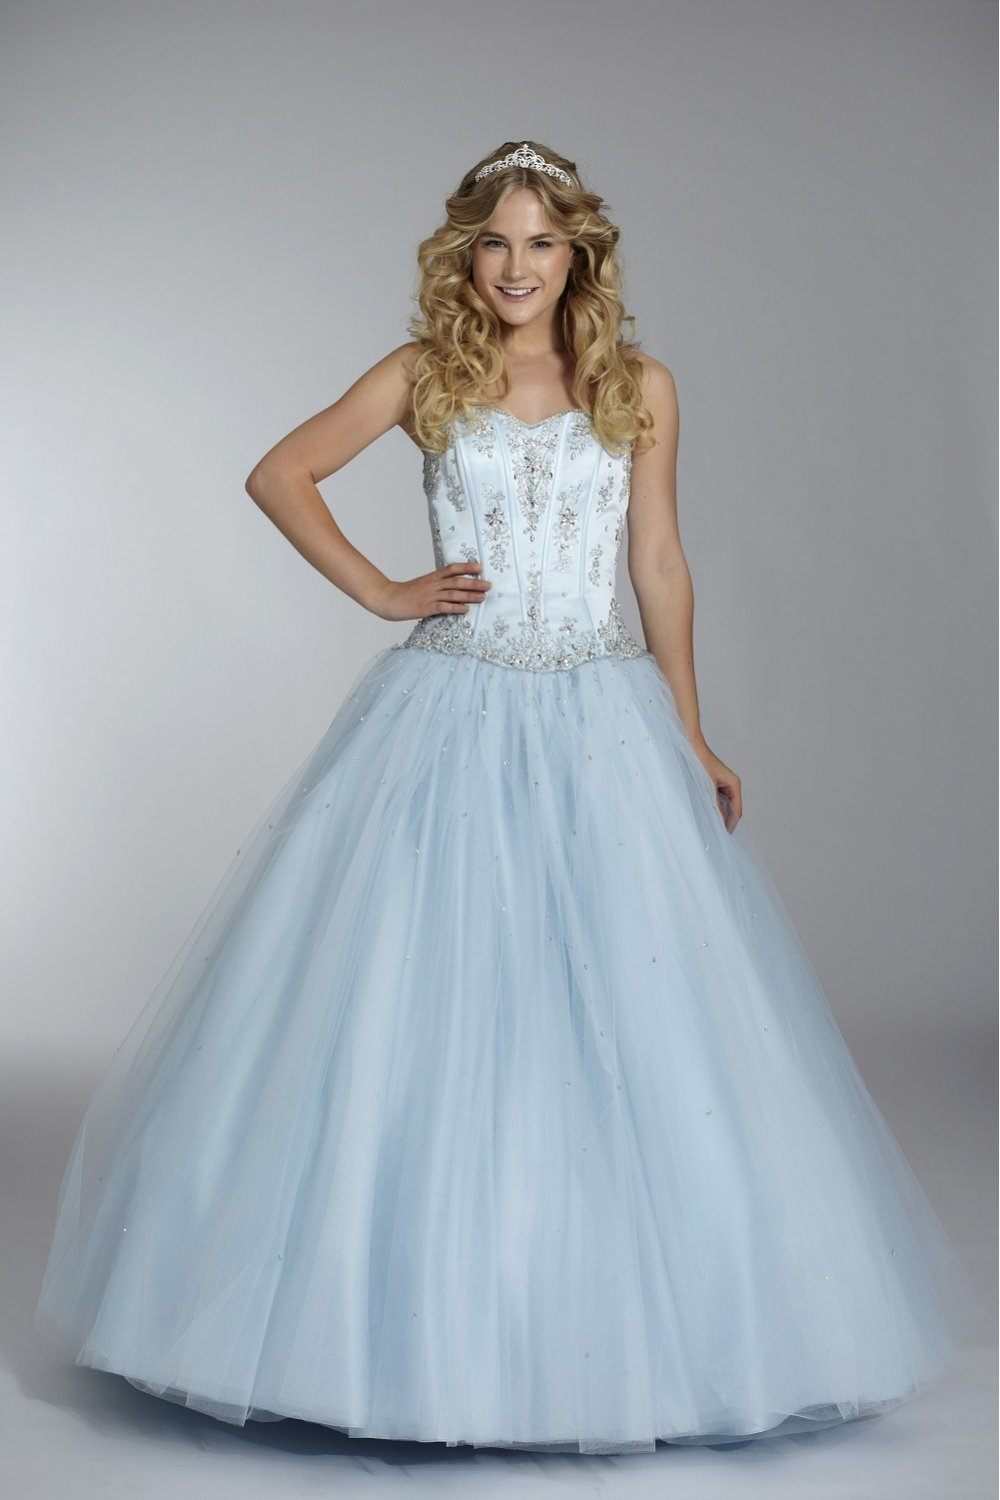 Tiffanys Carly Jane Netted Prom Dress In Ice Blue